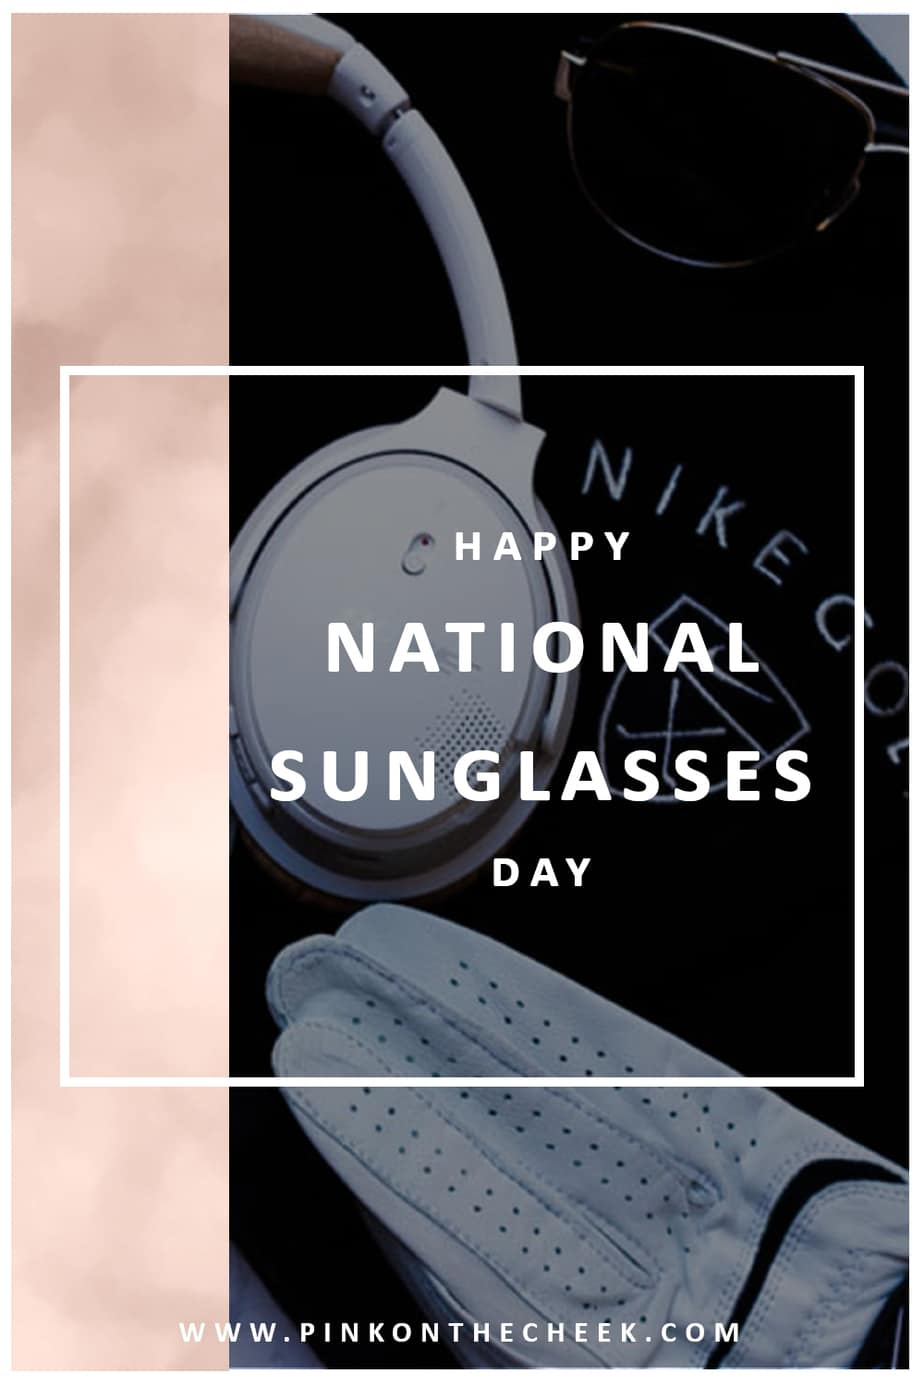 f6c3c45caa Happy National Sunglasses Day Featuring Xperio UV